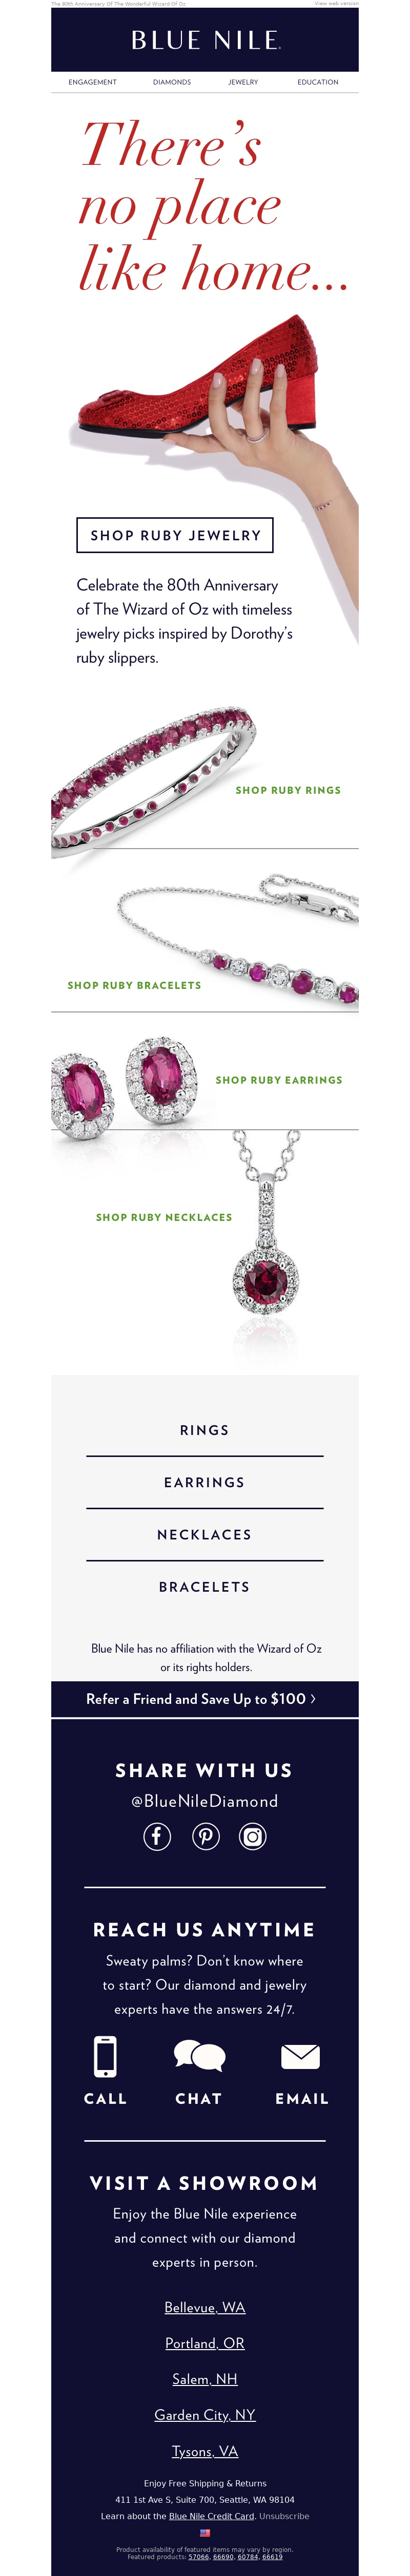 jewelry email example